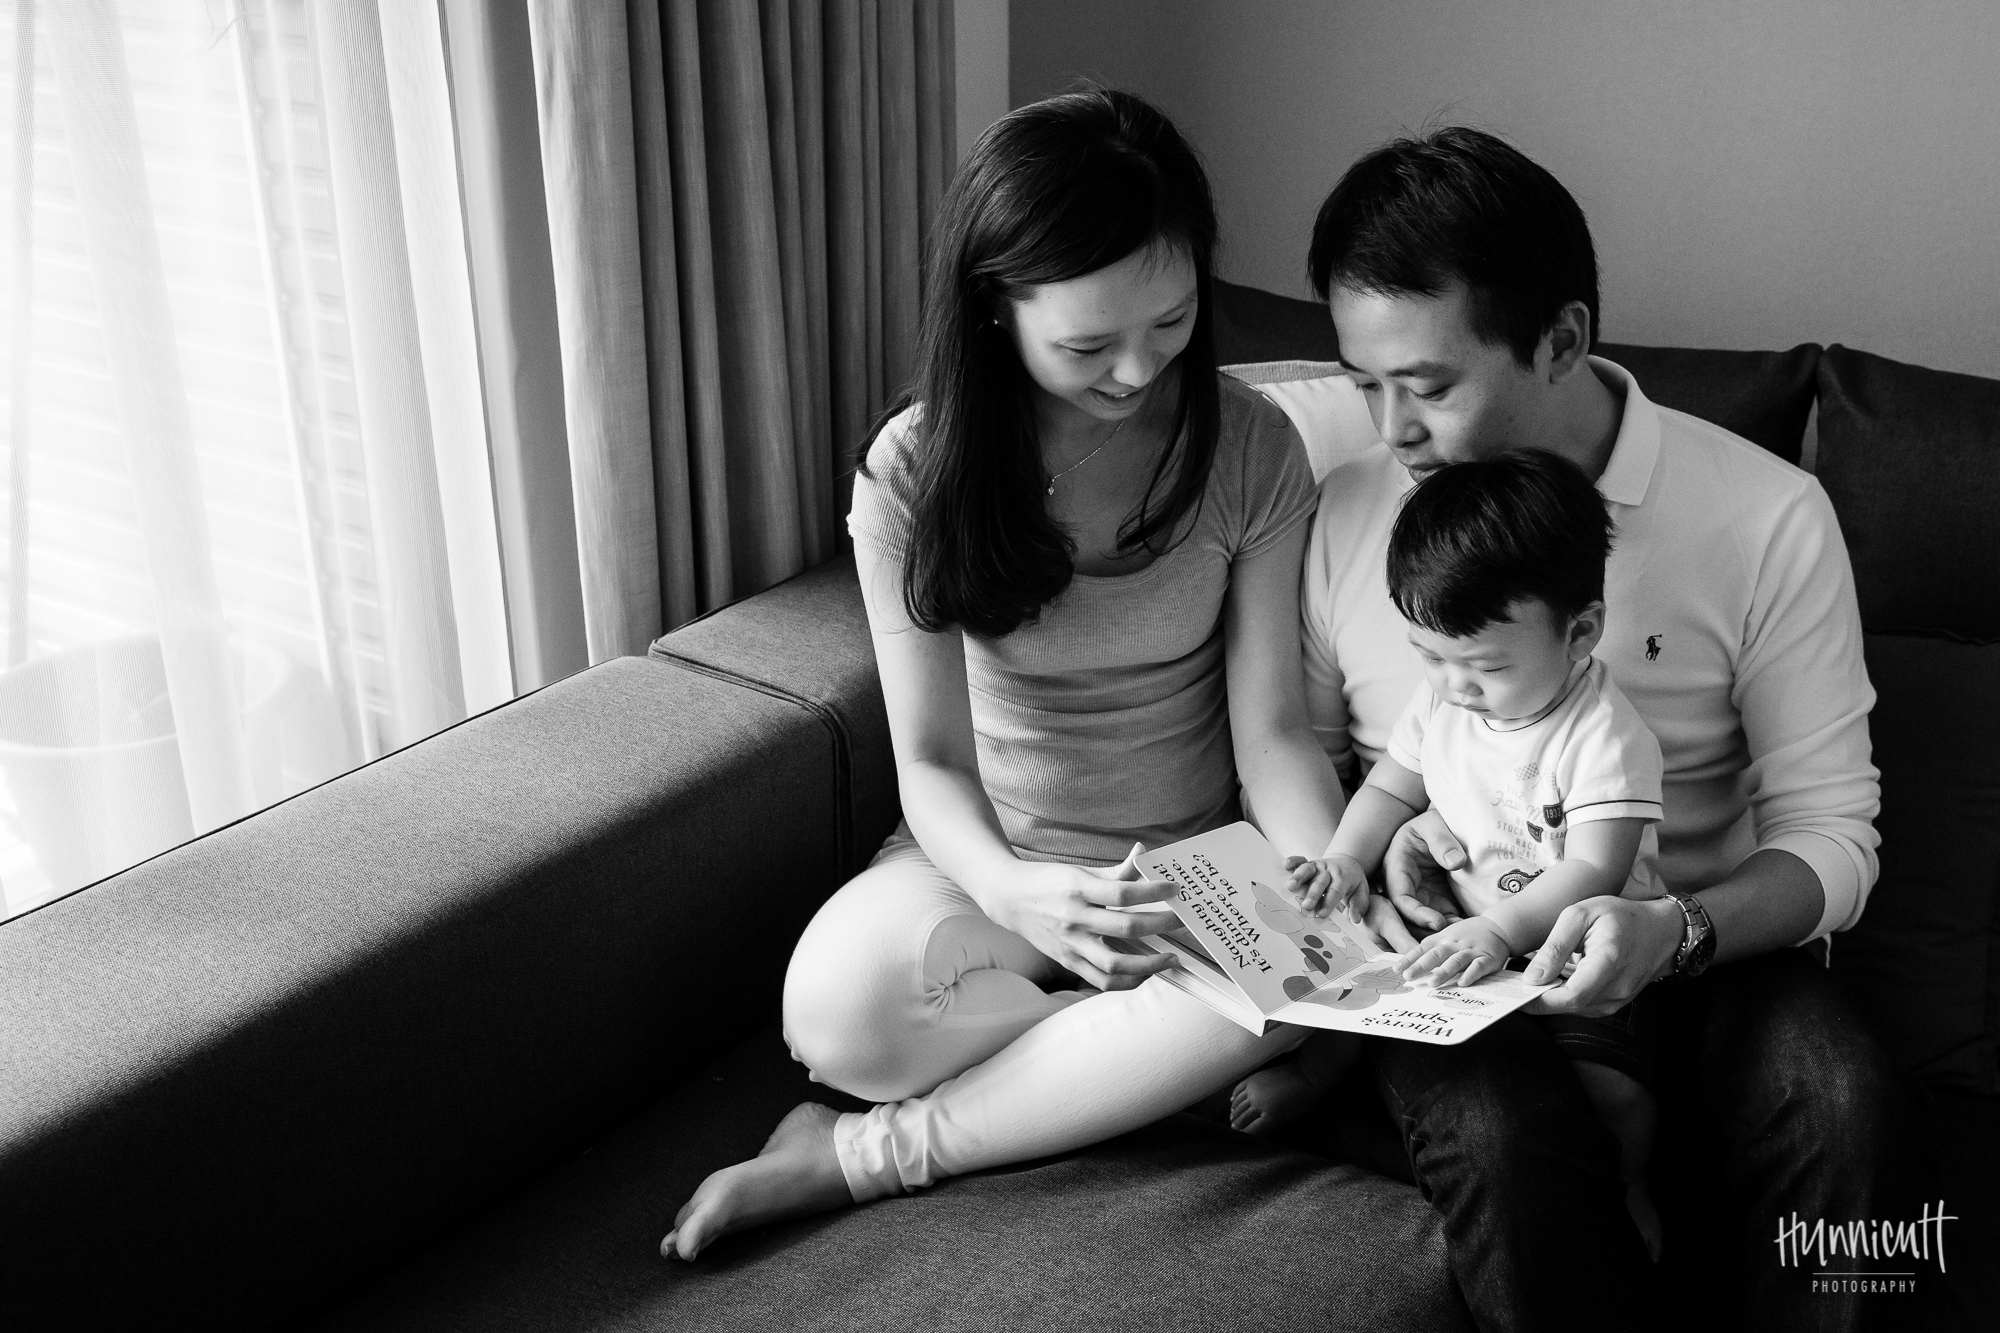 Indoor-Natural-Light-Family-HunnicuttPhotography-RebeccaHunnicuttFarren-Taichung-Taiwan-9